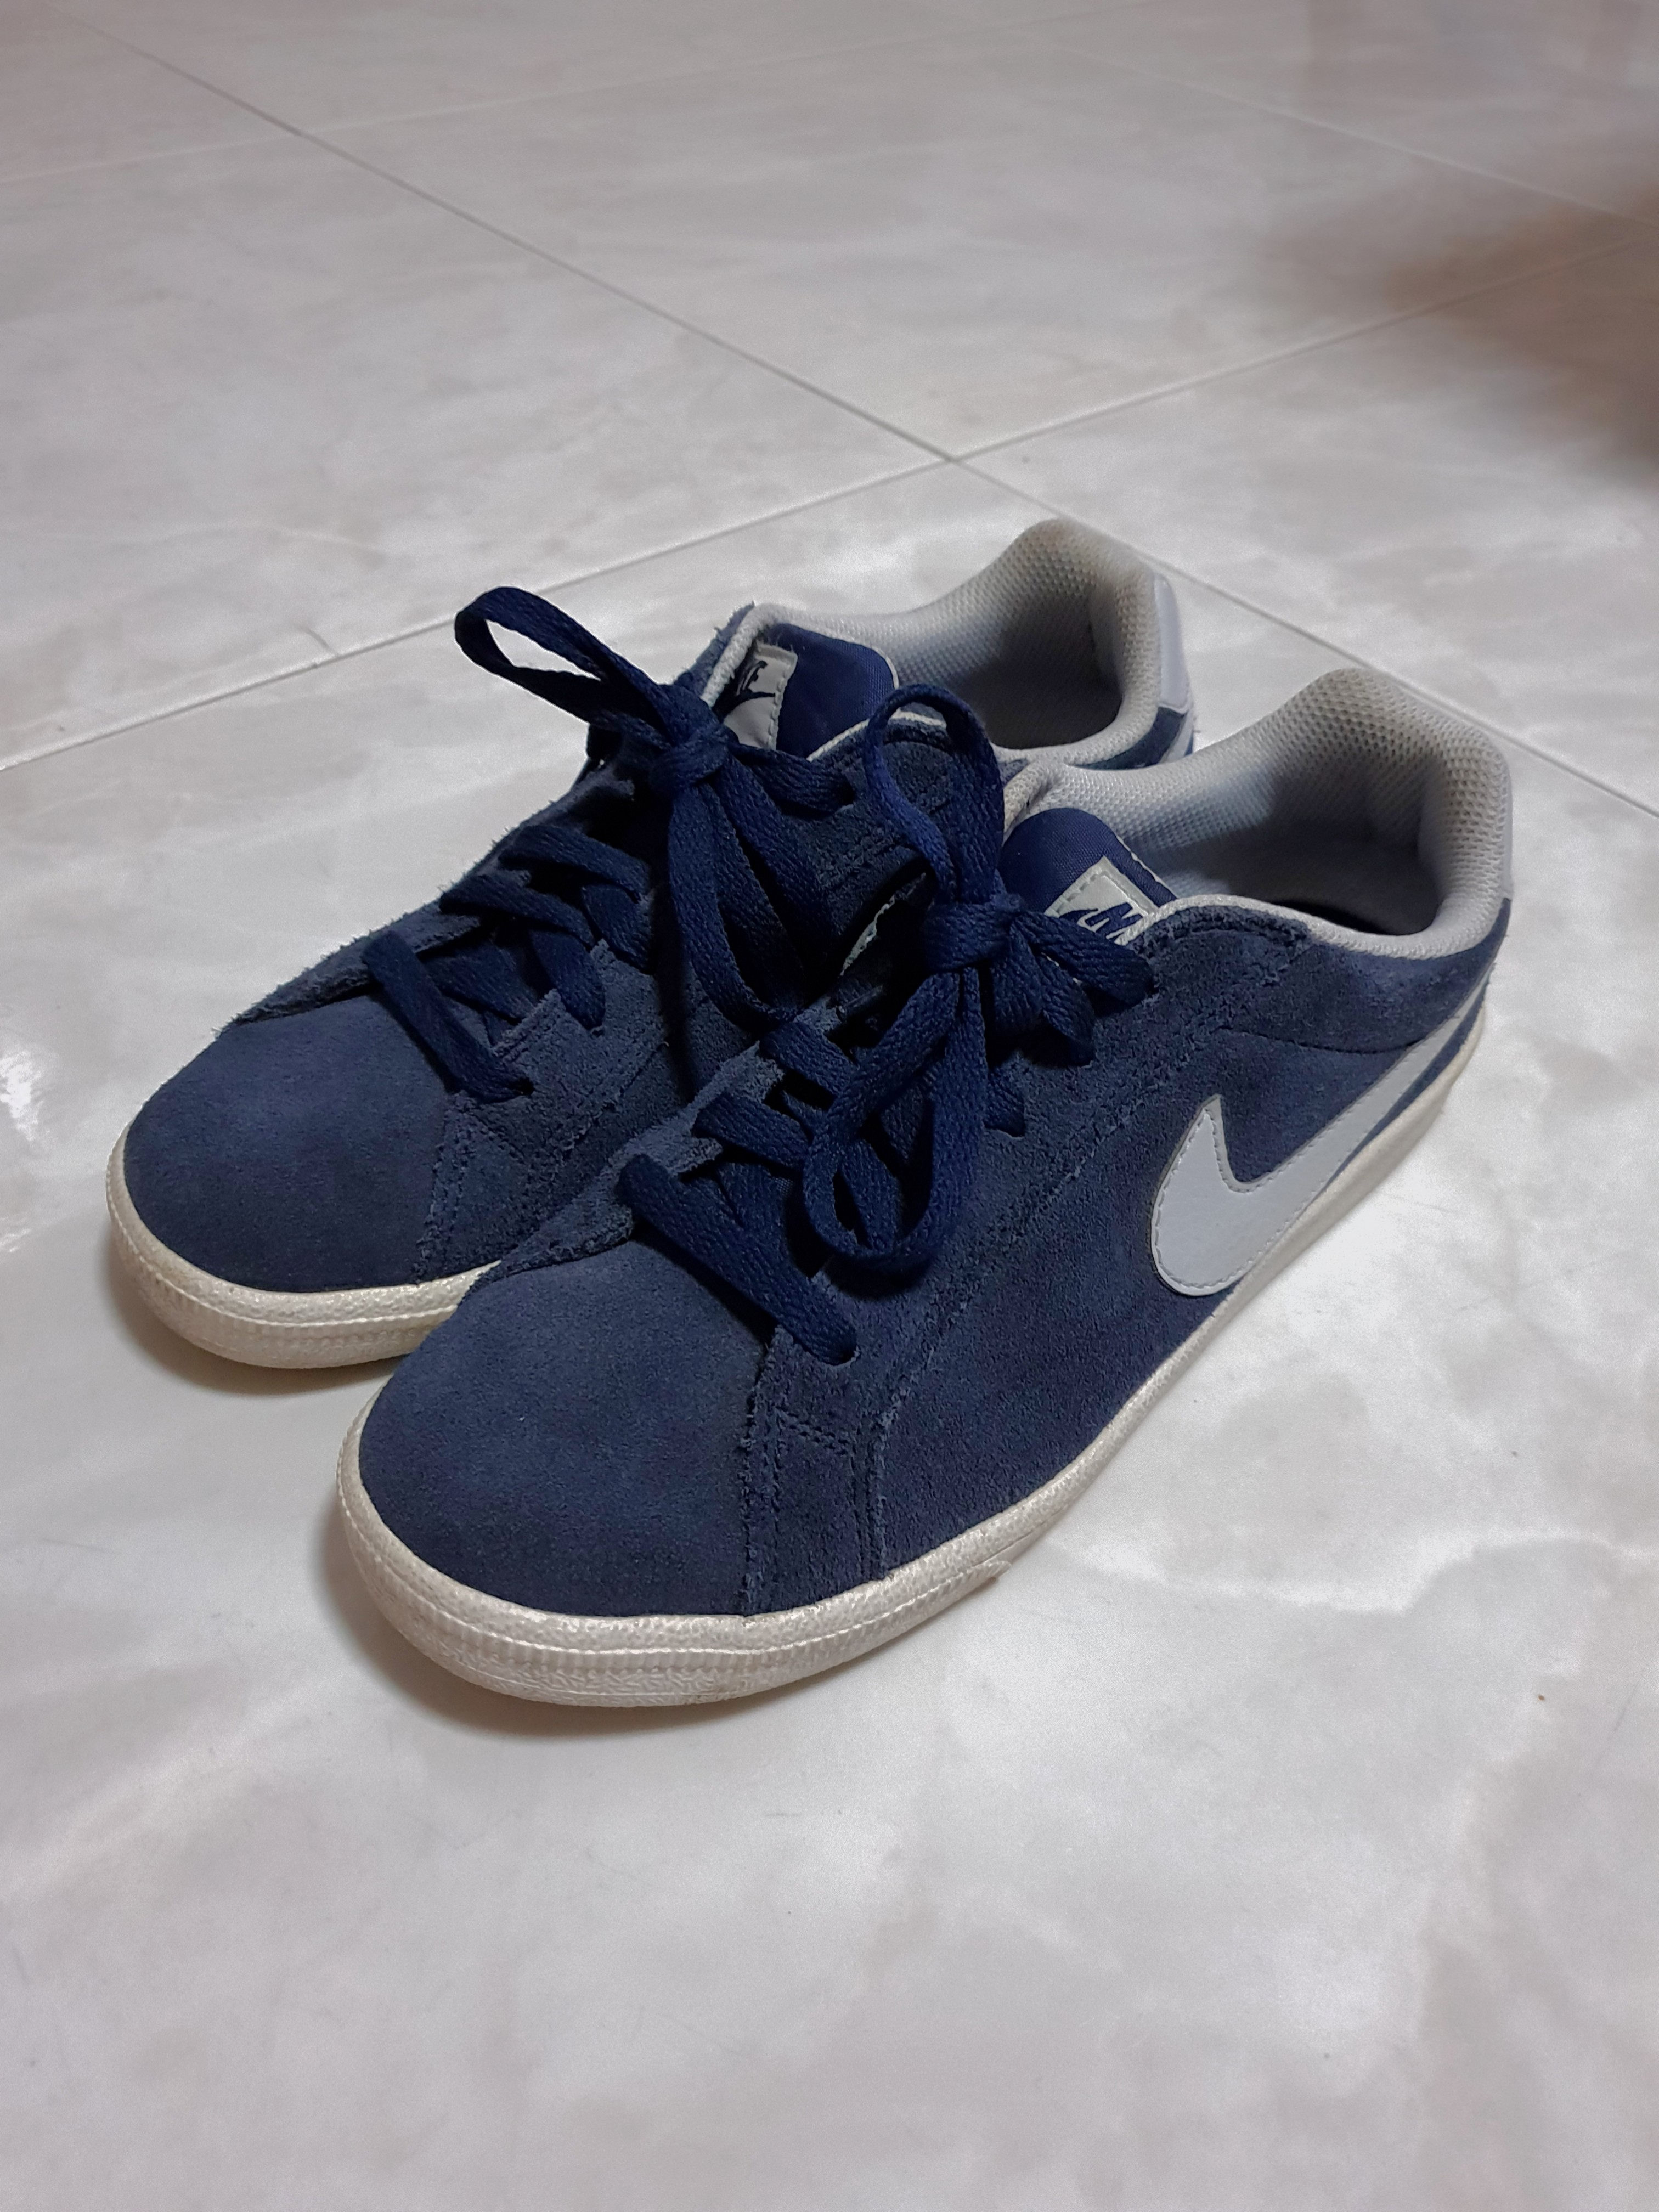 new style 1d8c2 98b7a Home · Men s Fashion · Footwear · Sneakers. photo photo photo photo photo